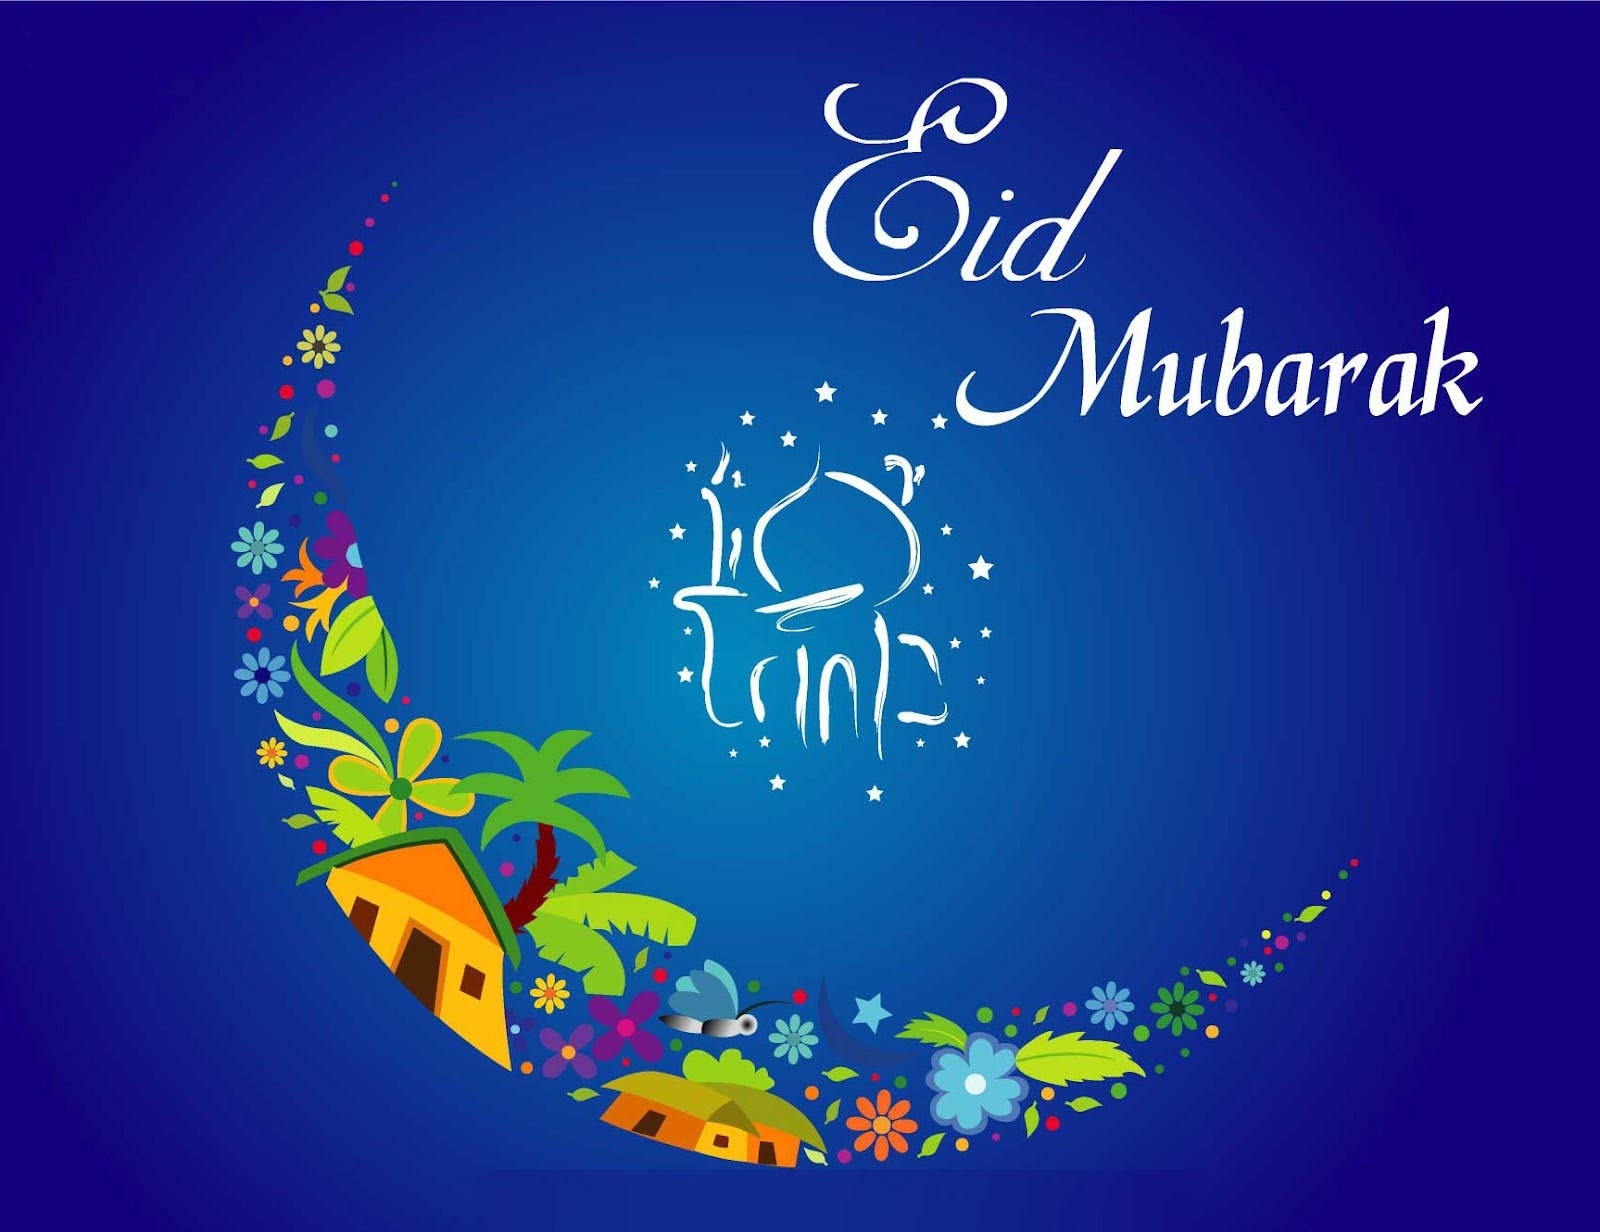 Beautiful Eid Mubarak Greetings Cards 2015